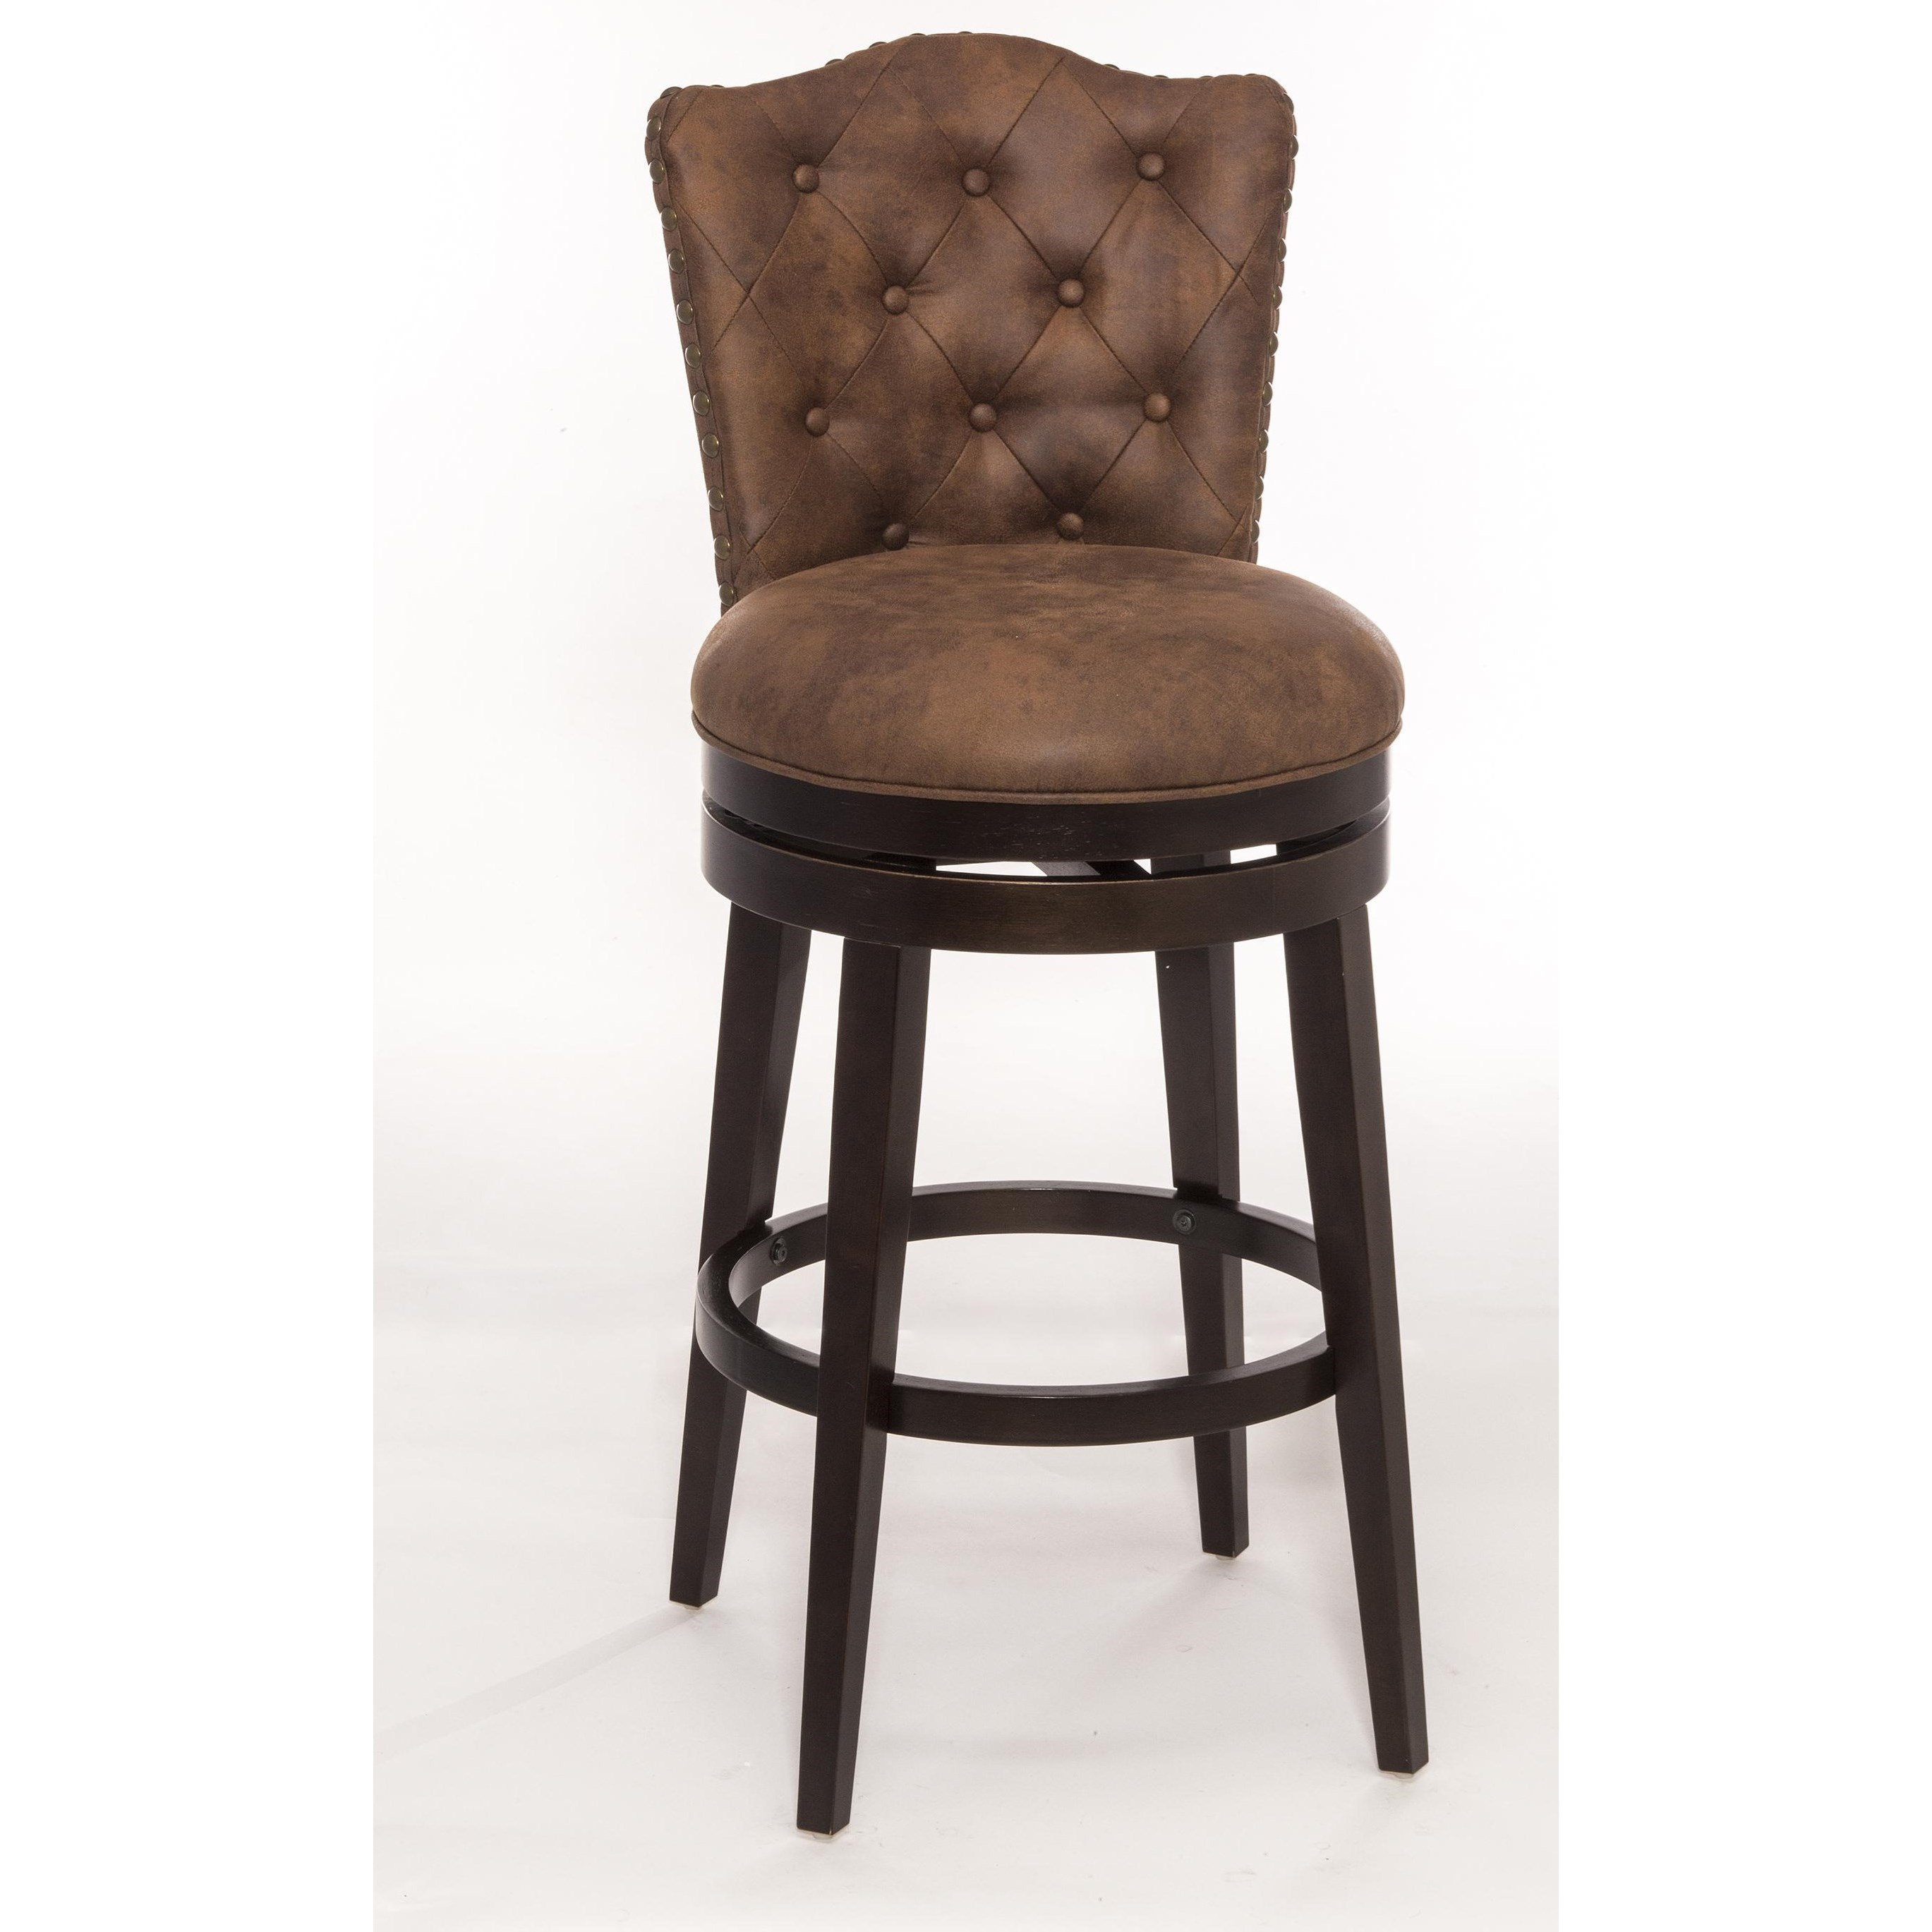 Upholstered Bar Chairs Hillsdale Wood Stools 5945 830 Swivel Bar Stool With